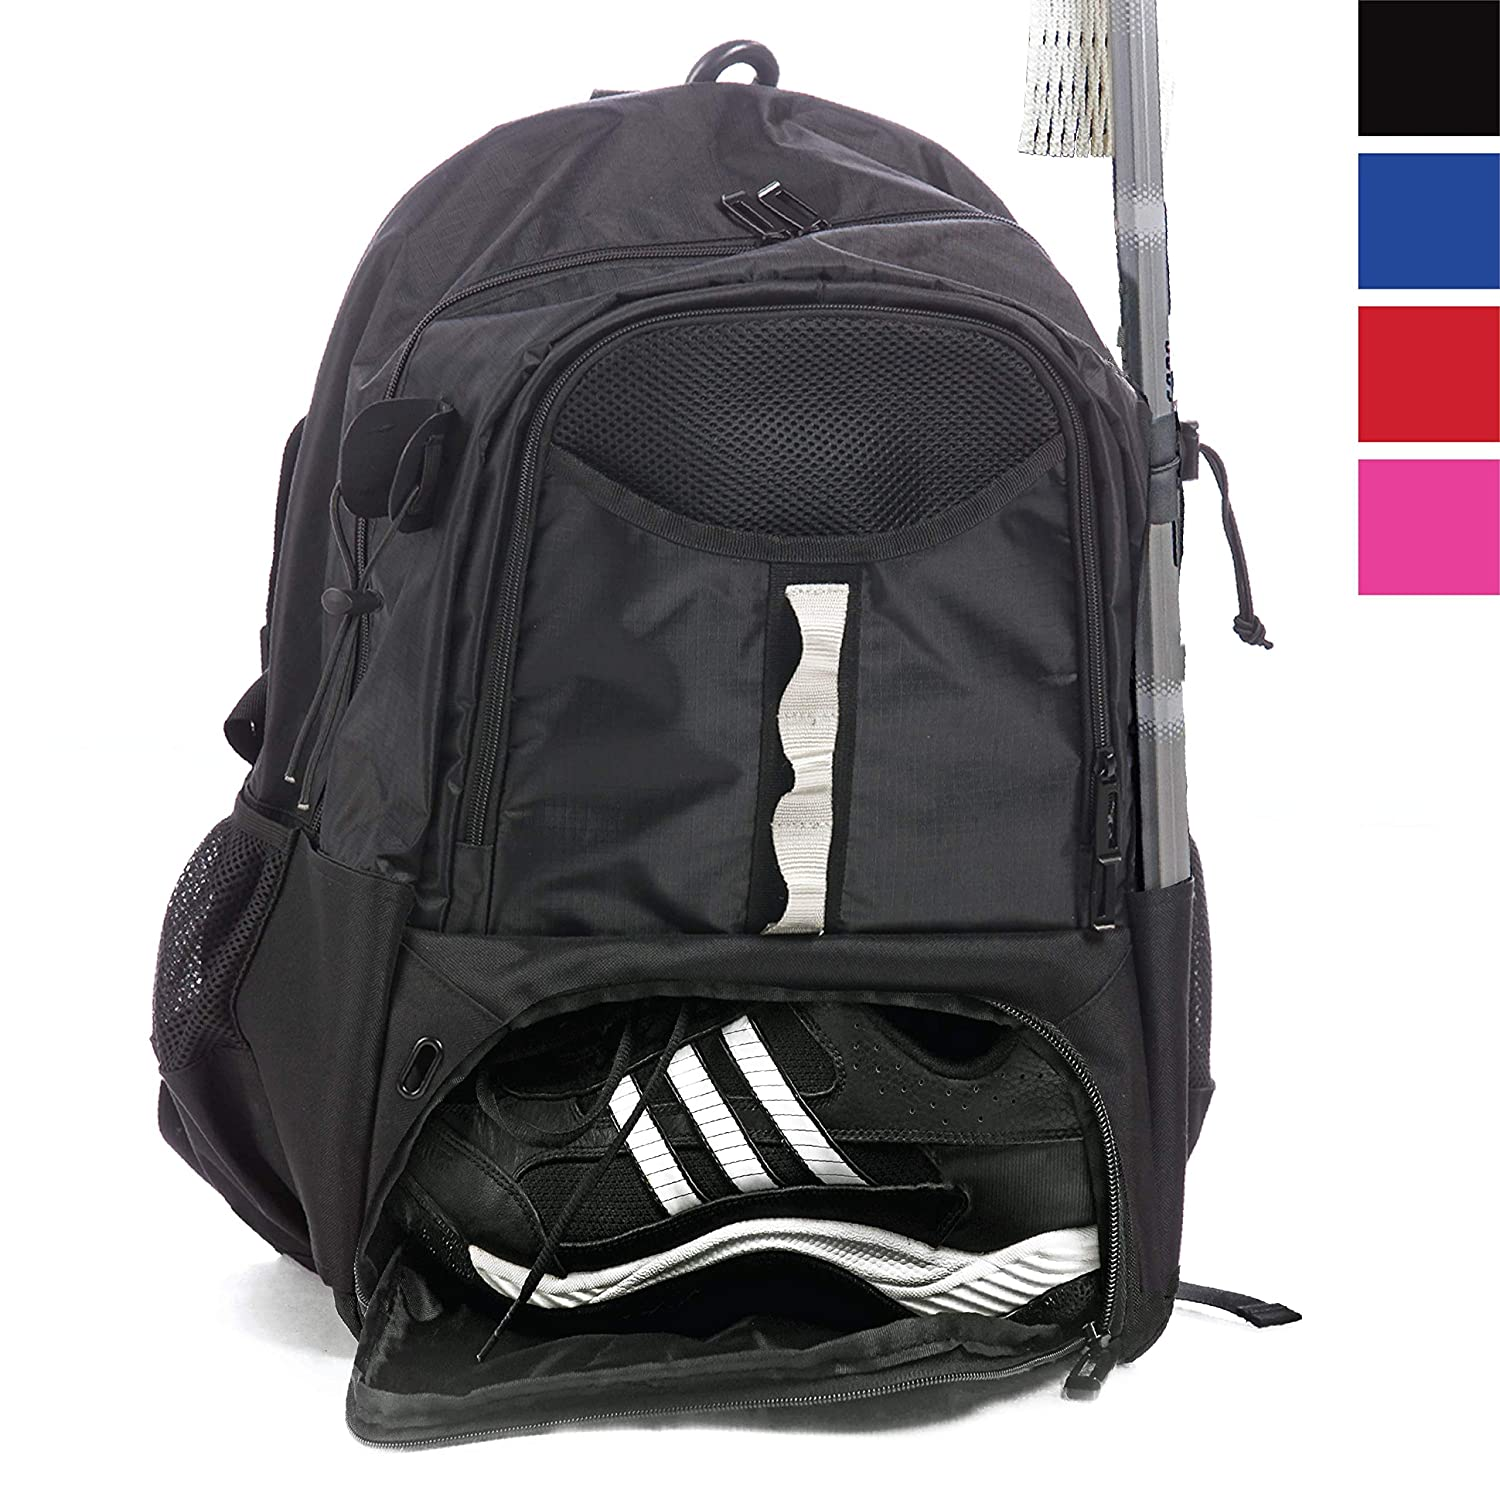 Athletico Youth Lacrosse Bag - Extra Large Lacrosse Backpack - Holds All Lacrosse or Field Hockey Equipment - Two Stick Holders and Separate Cleats Compartment